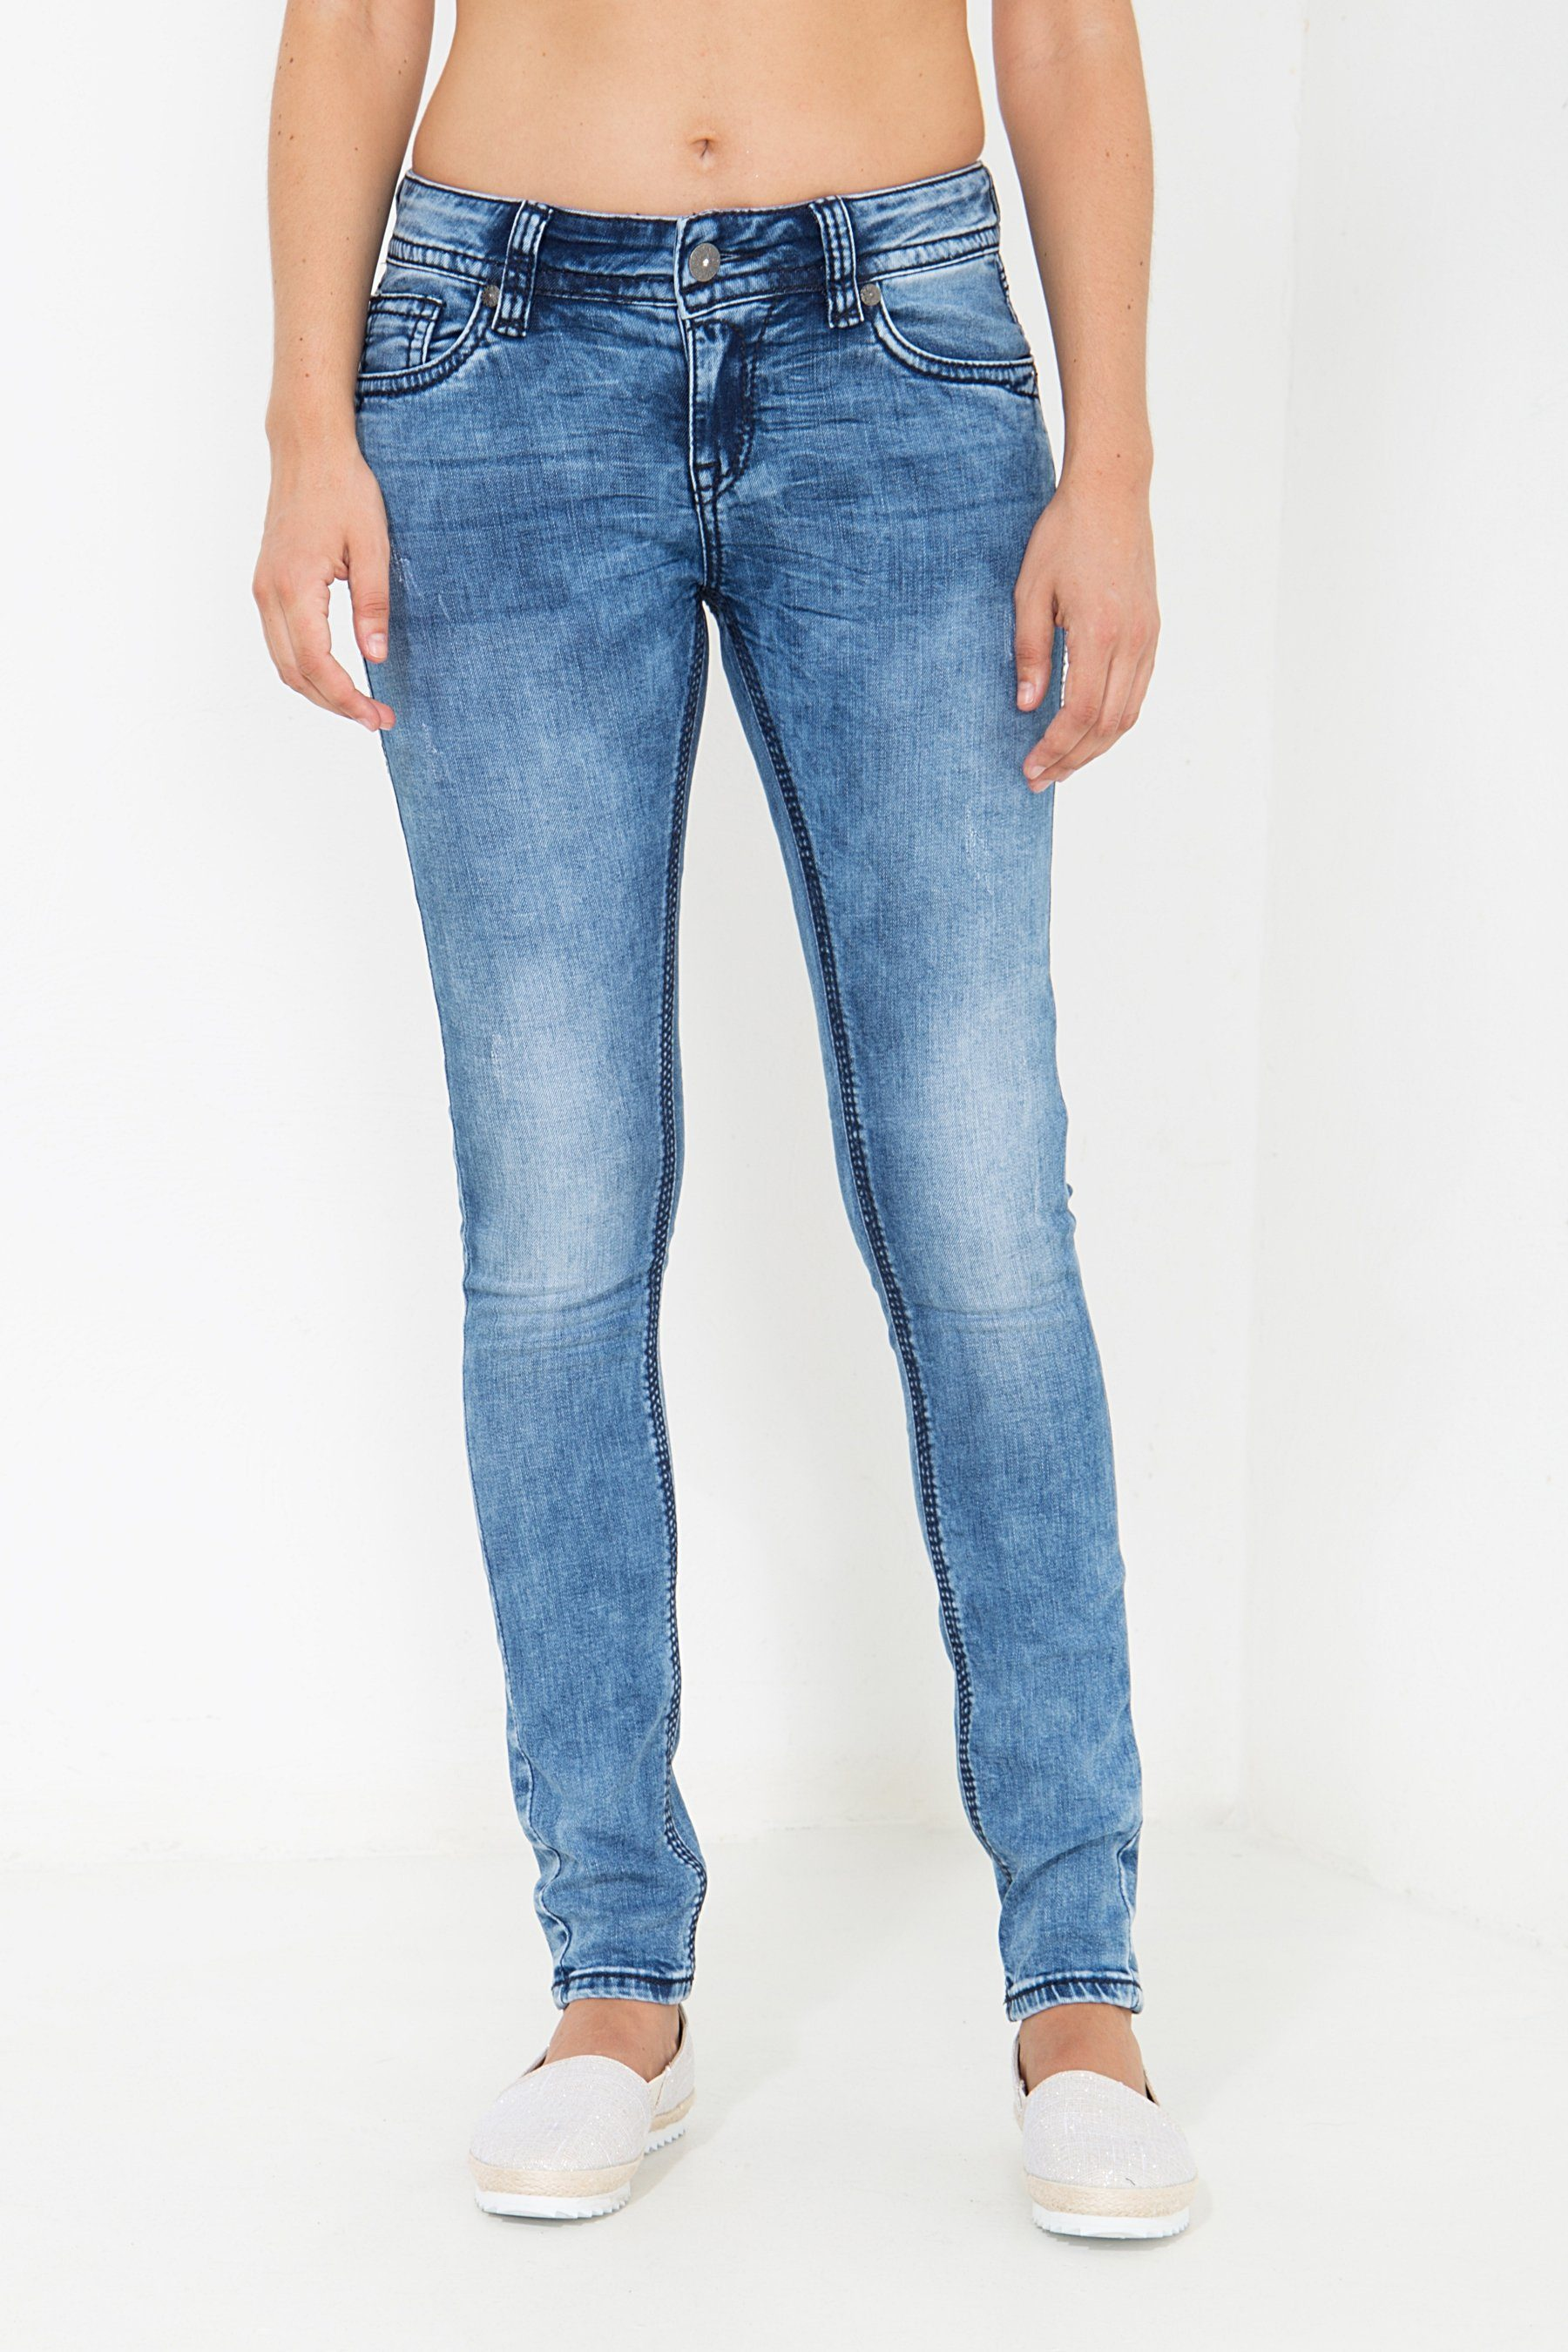 Blue Monkey Skinny-fit-Jeans Luna 3936 | 04251484680998